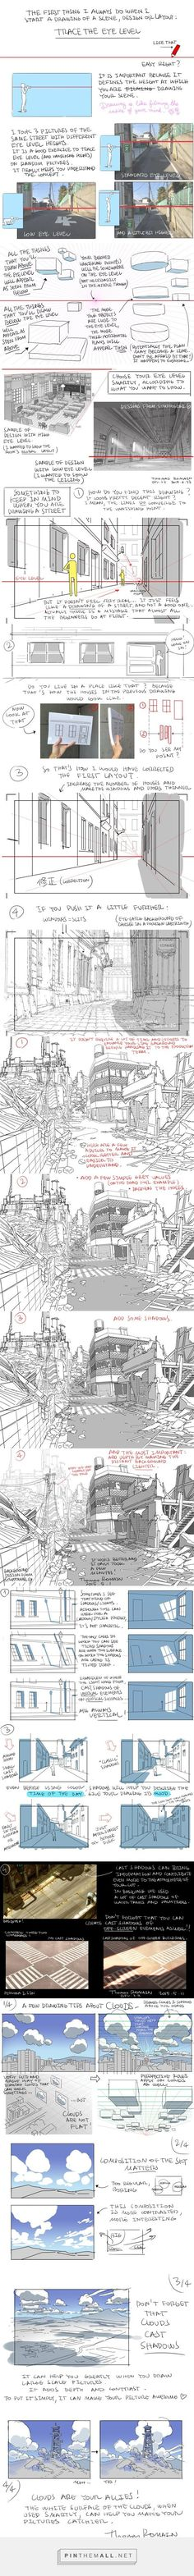 """""""Tips for drawing backgrounds"""" by Thomas Romain * Illustrator Tutorials, Art Tutorials, Drawing Techniques, Drawing Tips, Anatomy Reference, Art Reference, Thomas Romain, Character Design Tips, Comic Tutorial"""